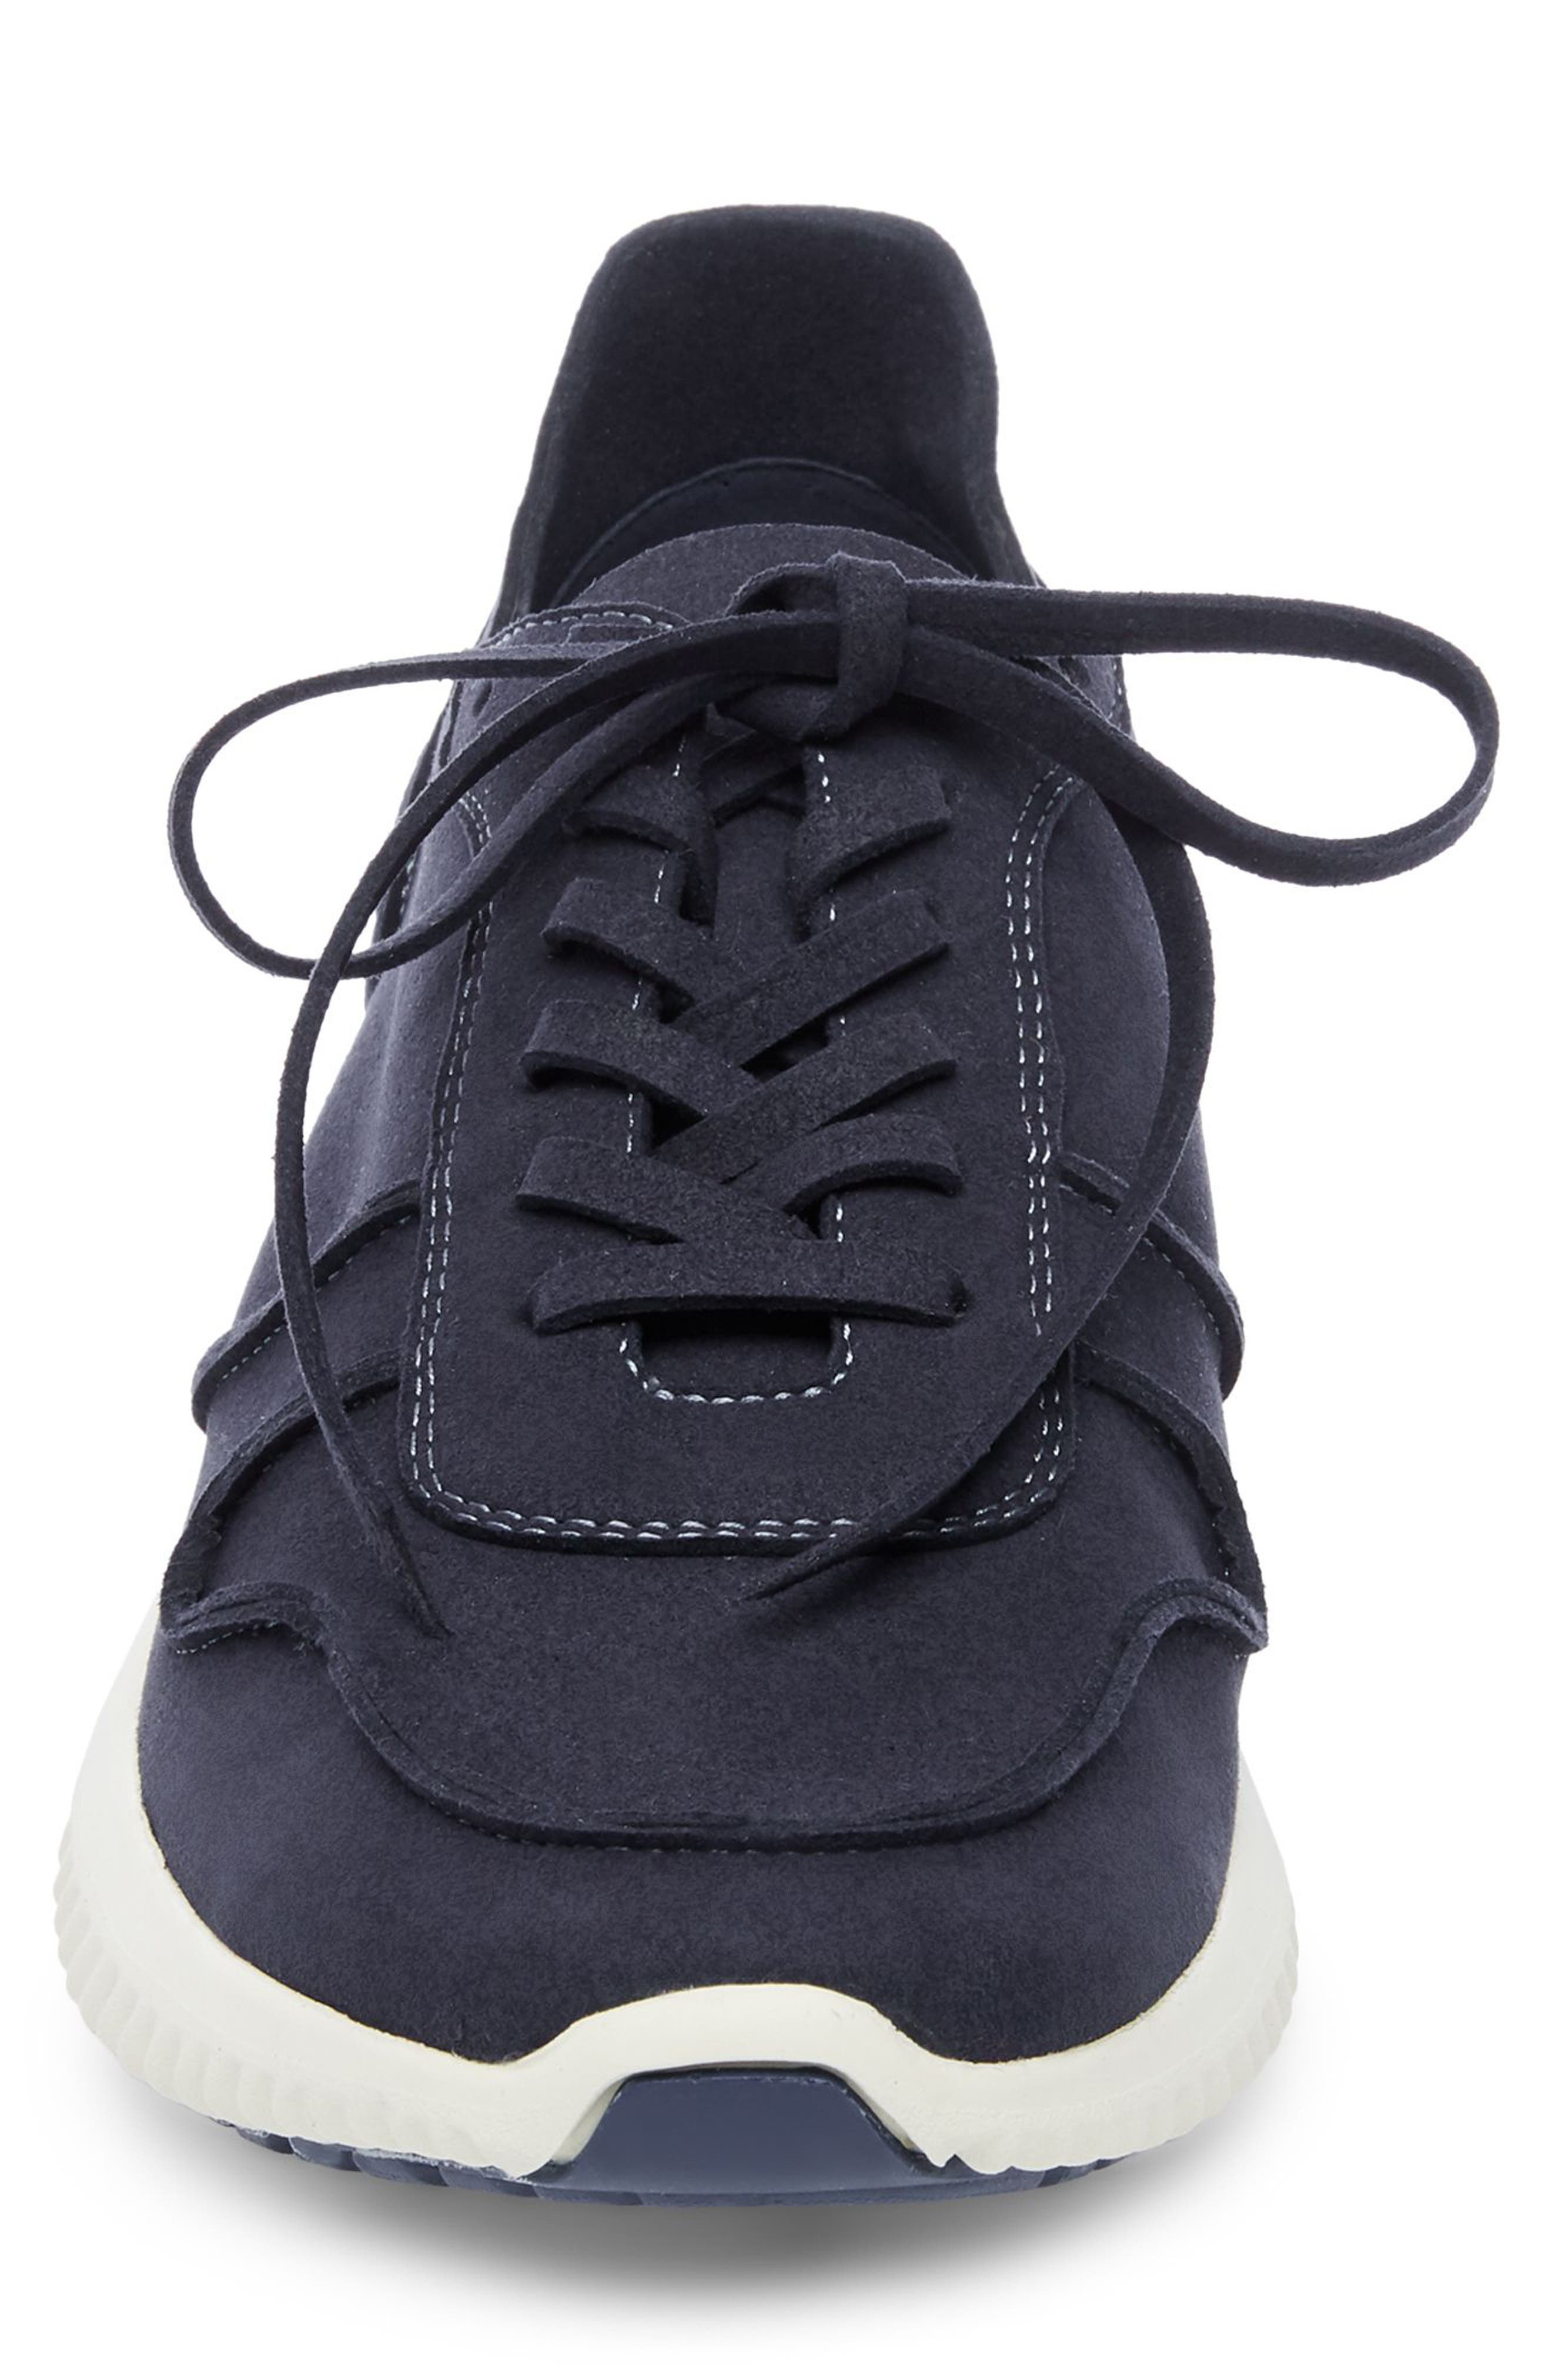 Rolf Low Top Sneaker,                             Alternate thumbnail 4, color,                             Navy Leather